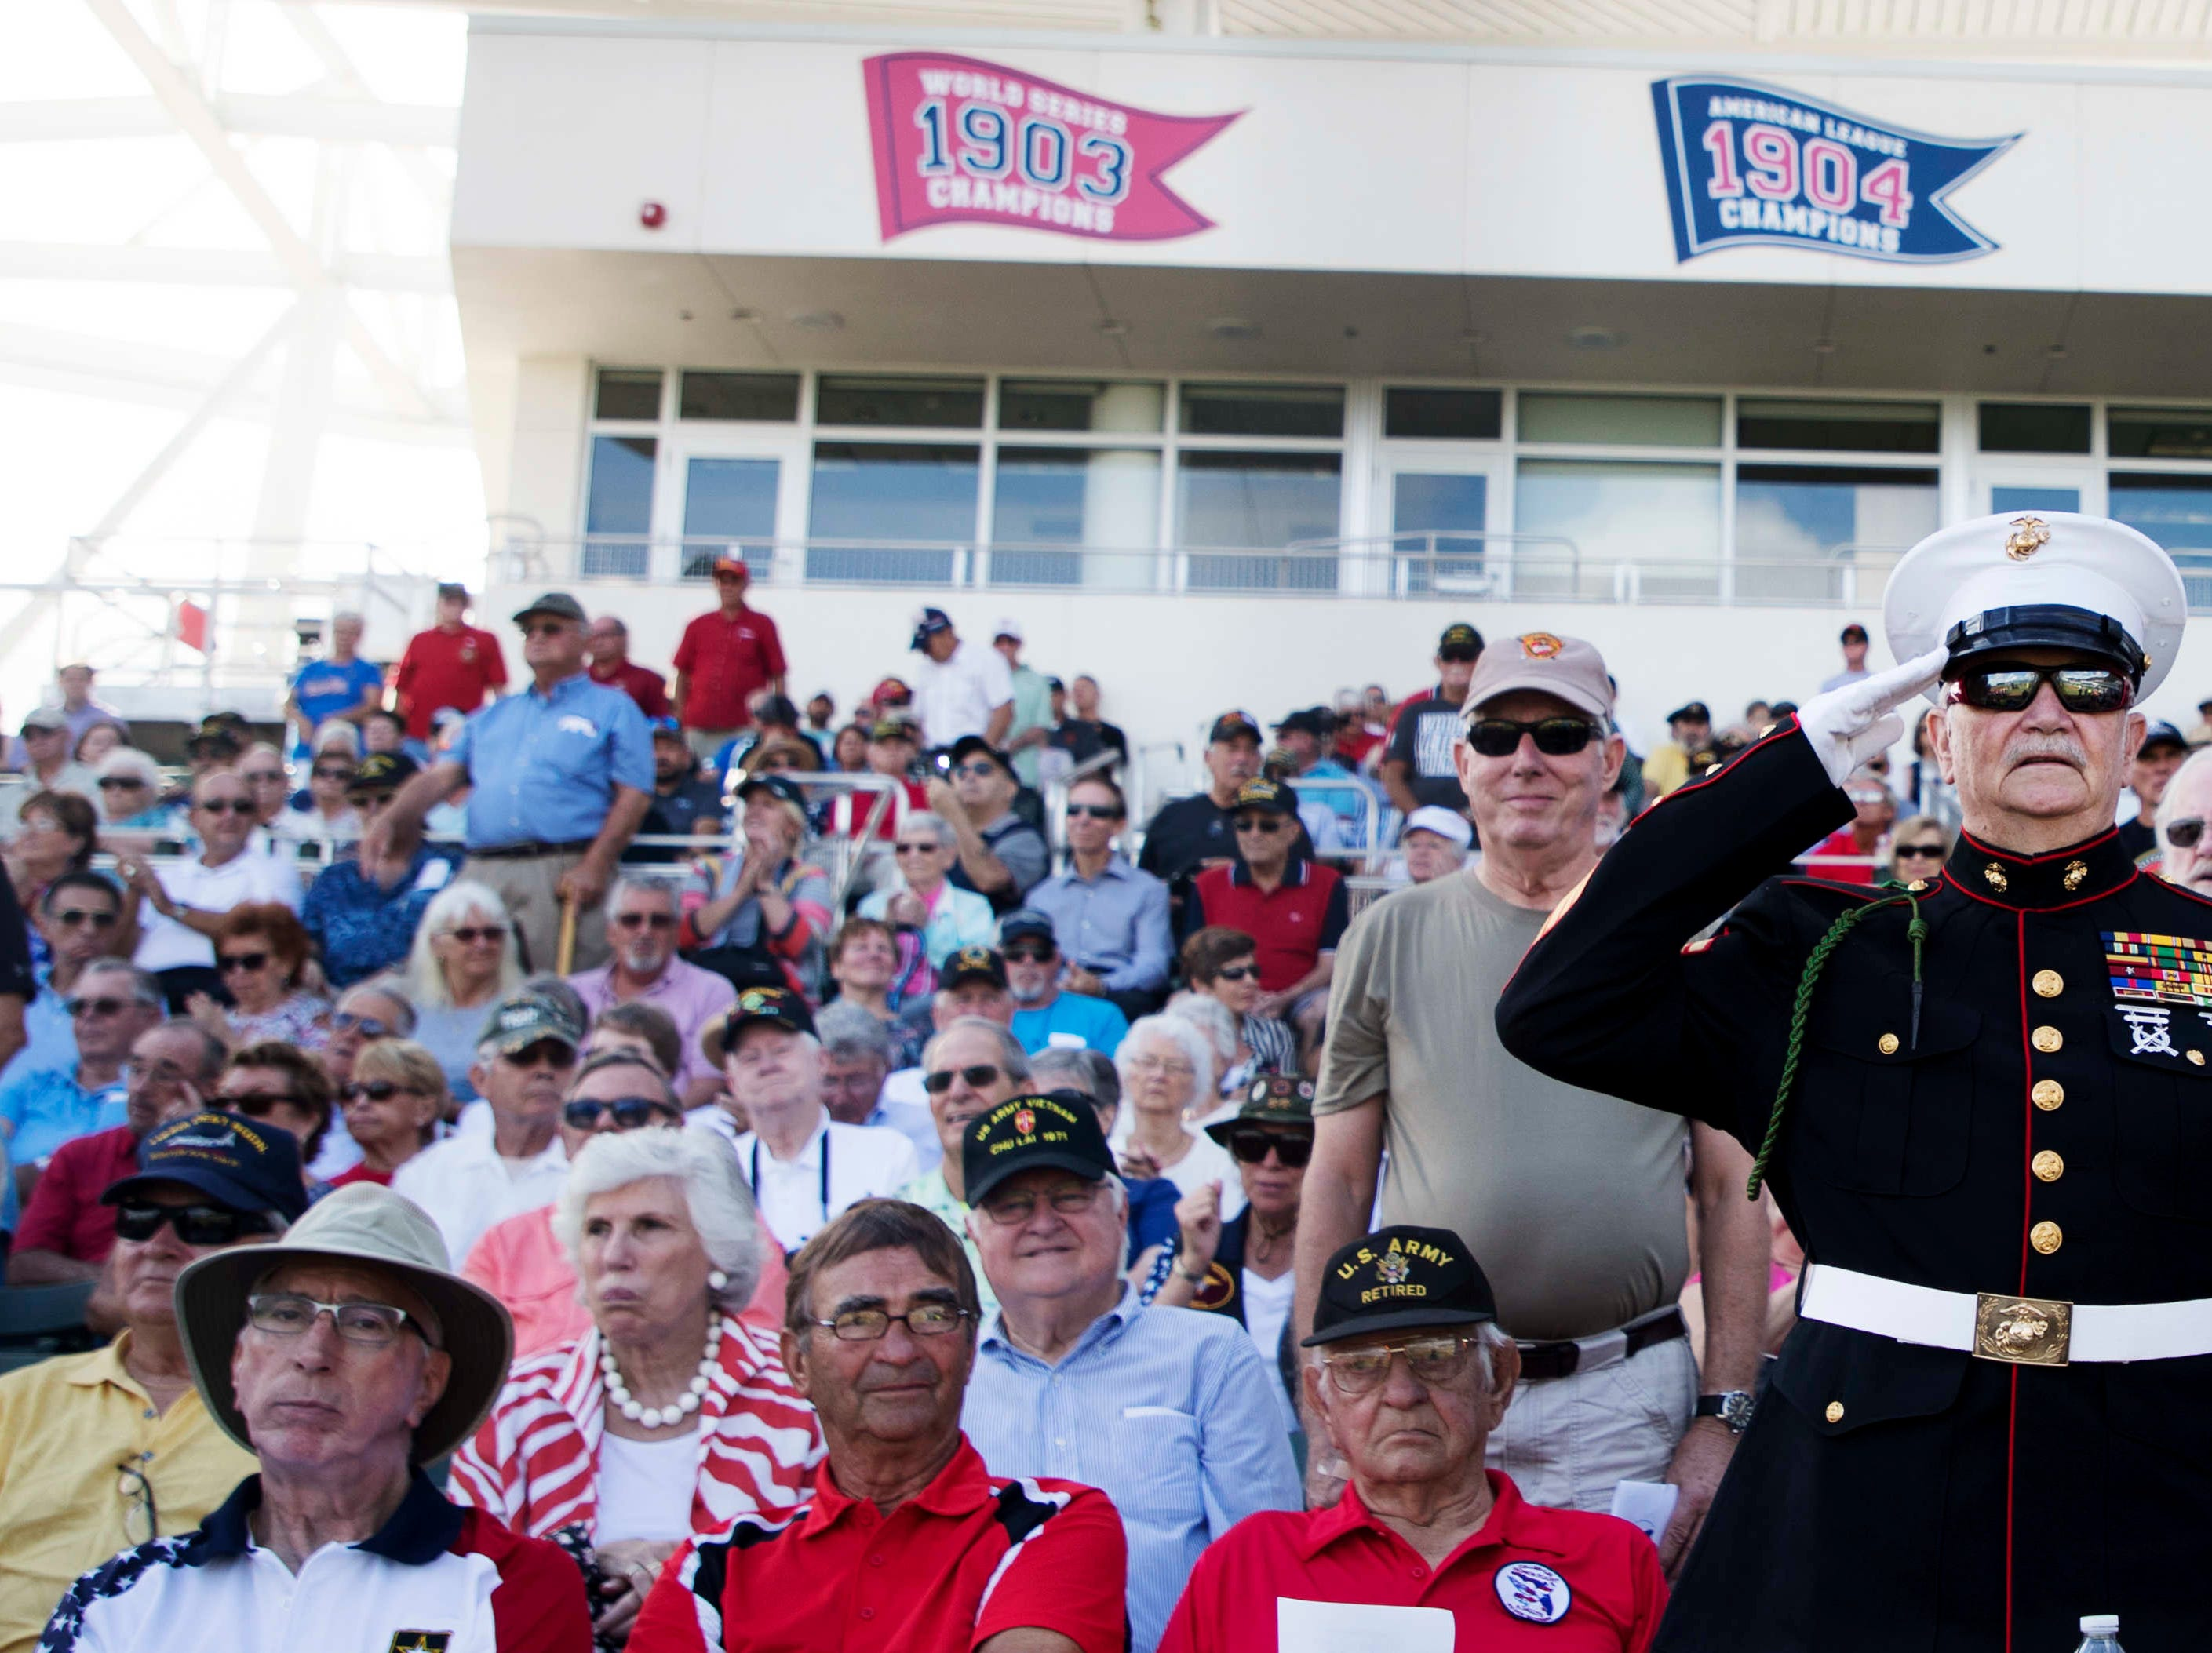 Marine veteran McClure Mathews salutes during a Collier-Lee Honor Flight veterans ceremony at jetBlue Park on Monday 11/12/2018. Veterans from all services who fought in the Vietnam War were honored with a Vietnam Veterans War Commemorative pin during the ceremony. Mathews served two tours in Vietnam.